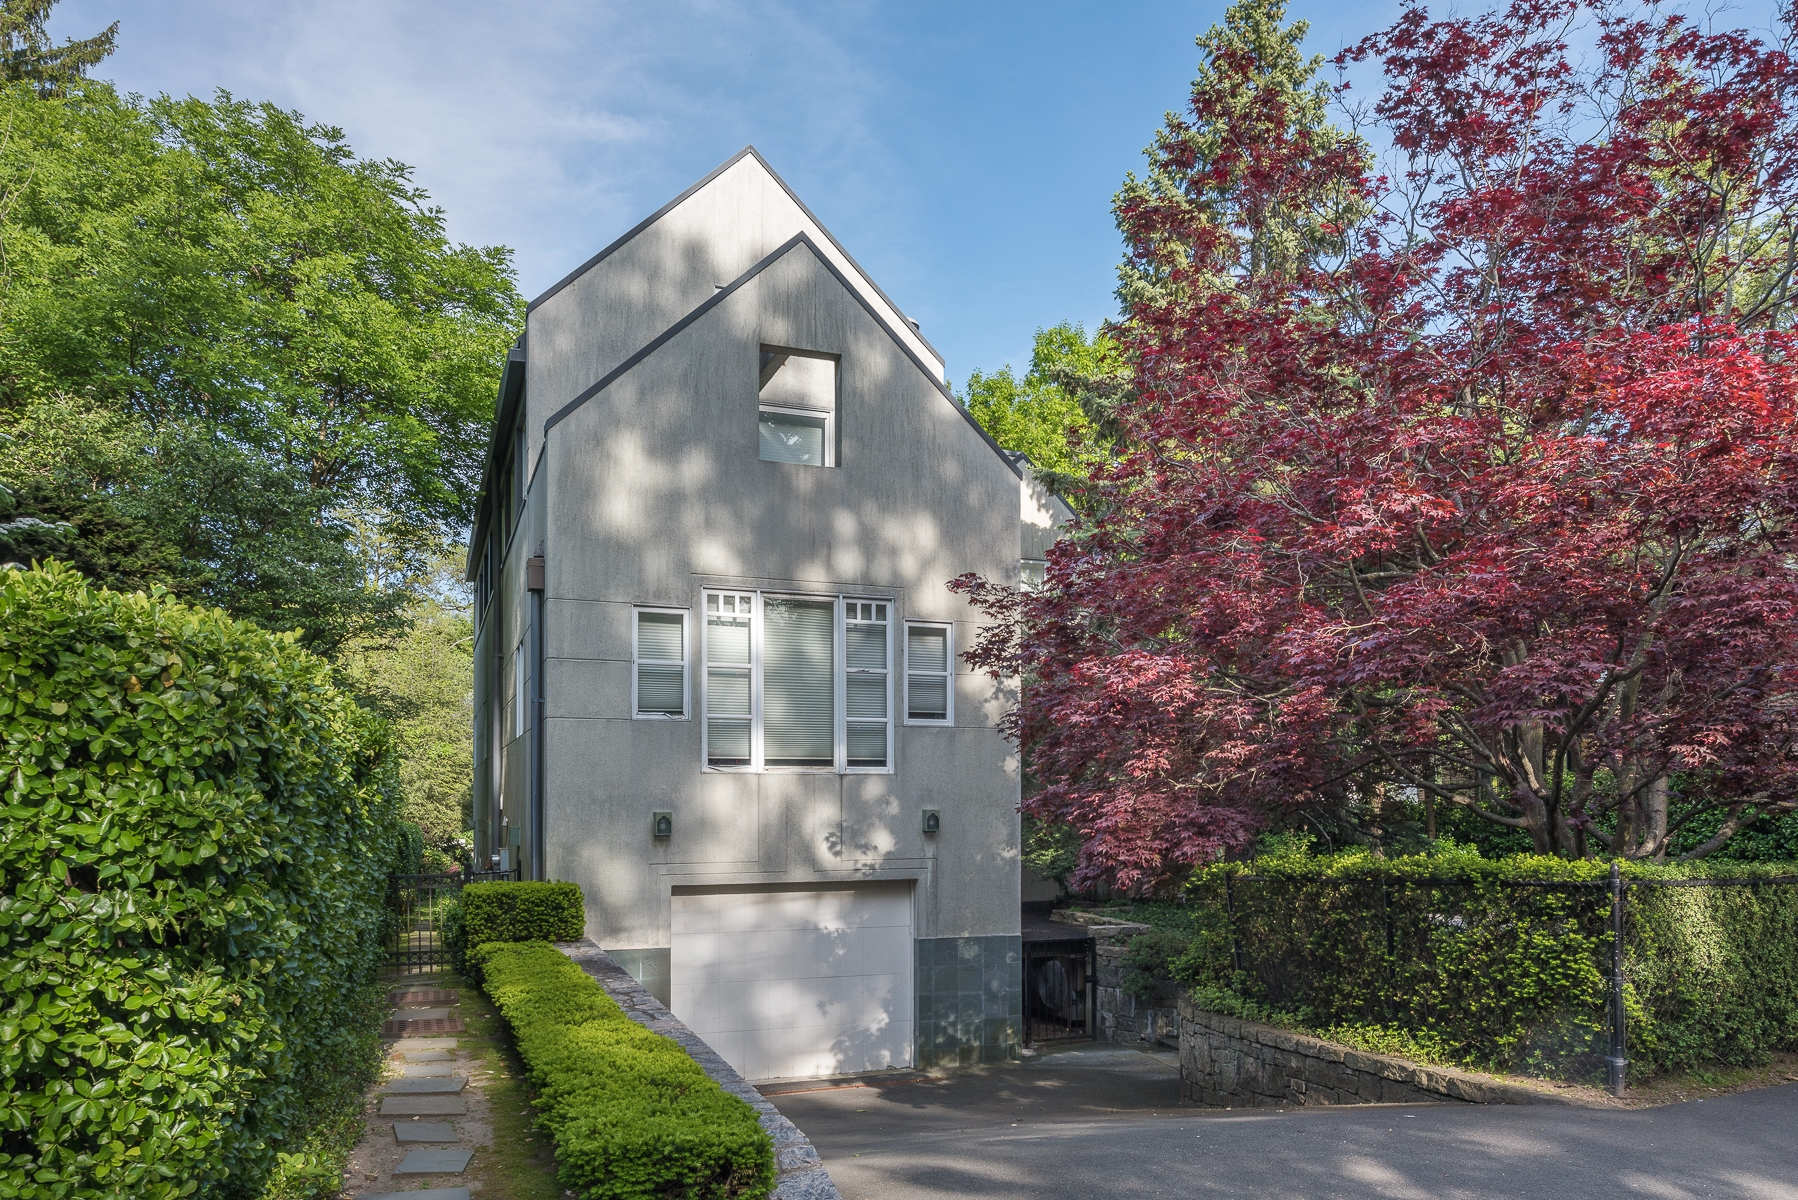 Single Family Home for Sale at Two Extraordinary Fieldston Houses 4506 Delafield Avenue Fieldston, Bronx, New York, 10471 United States